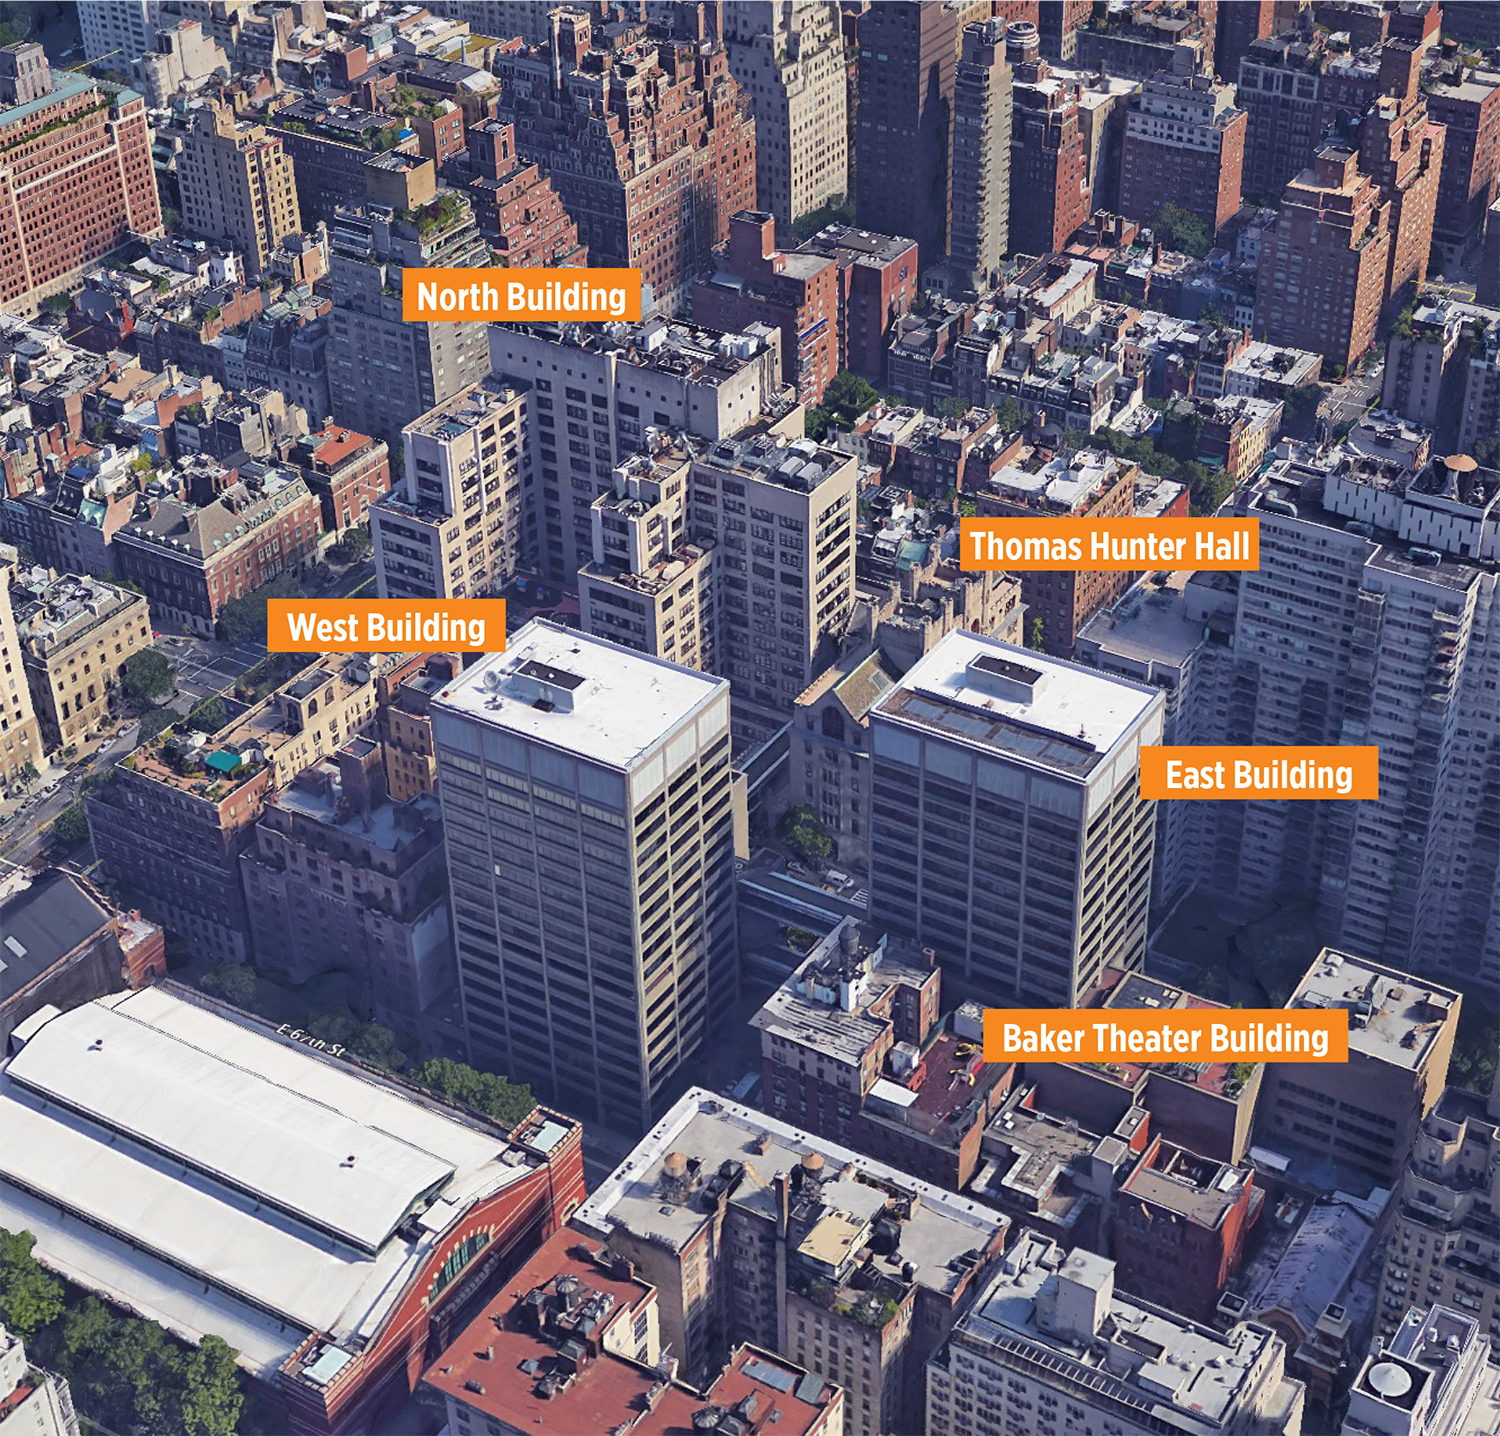 labeled campus aerial photo.jpg